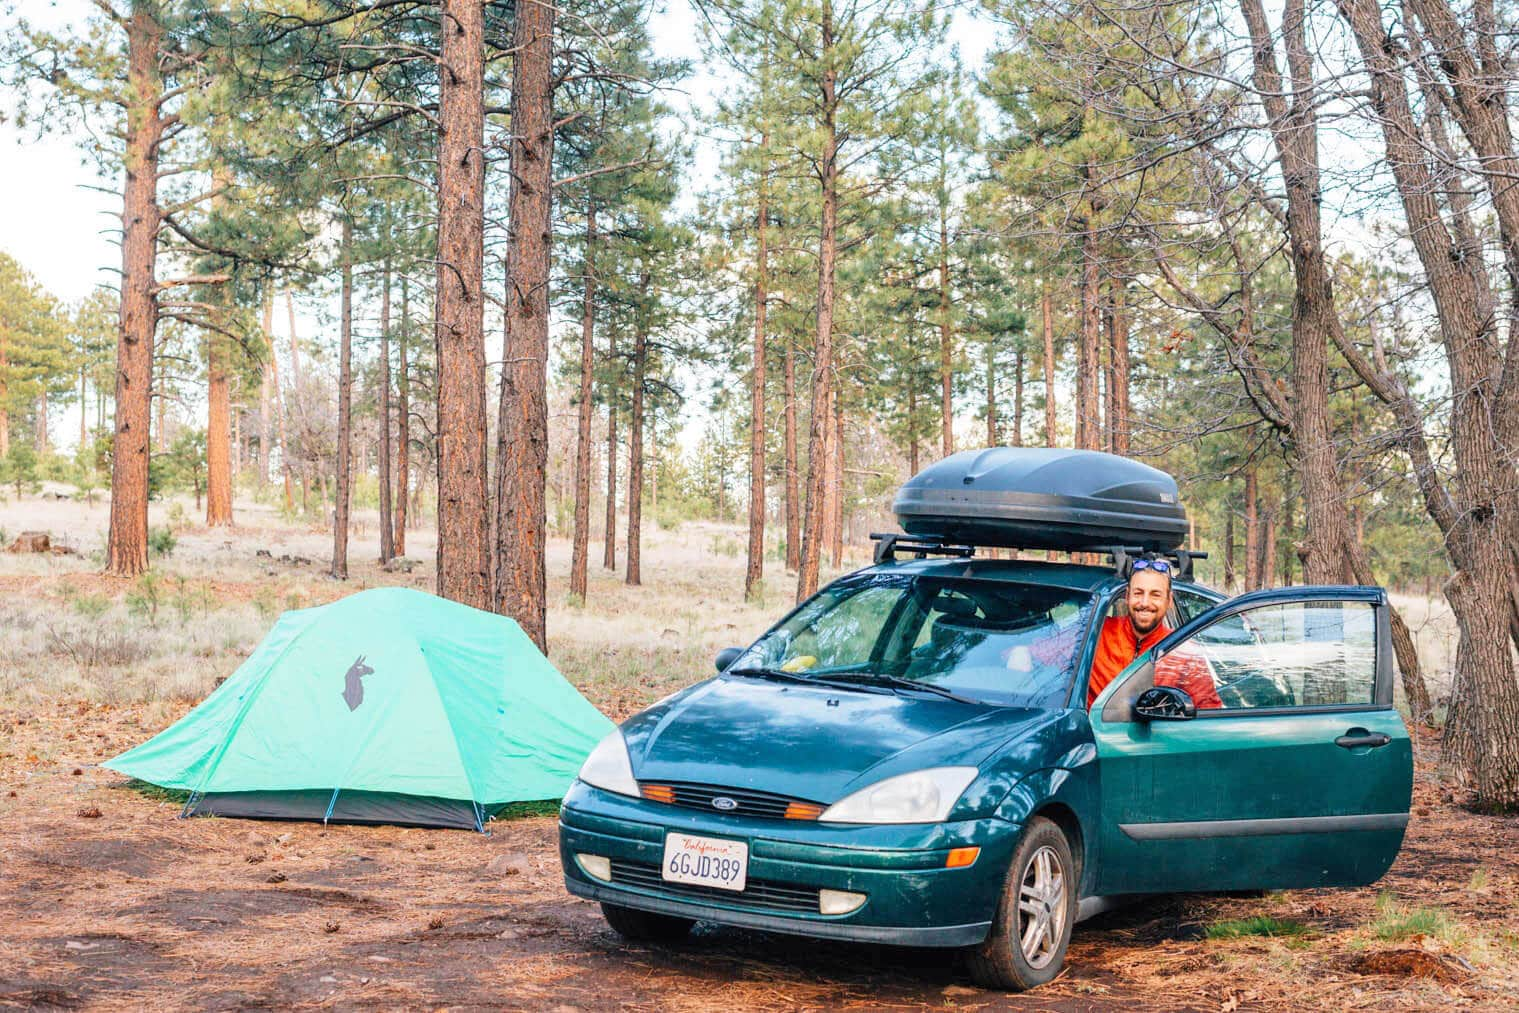 Find free camping near Flagstaff, Arizona in the Coconino National Forest